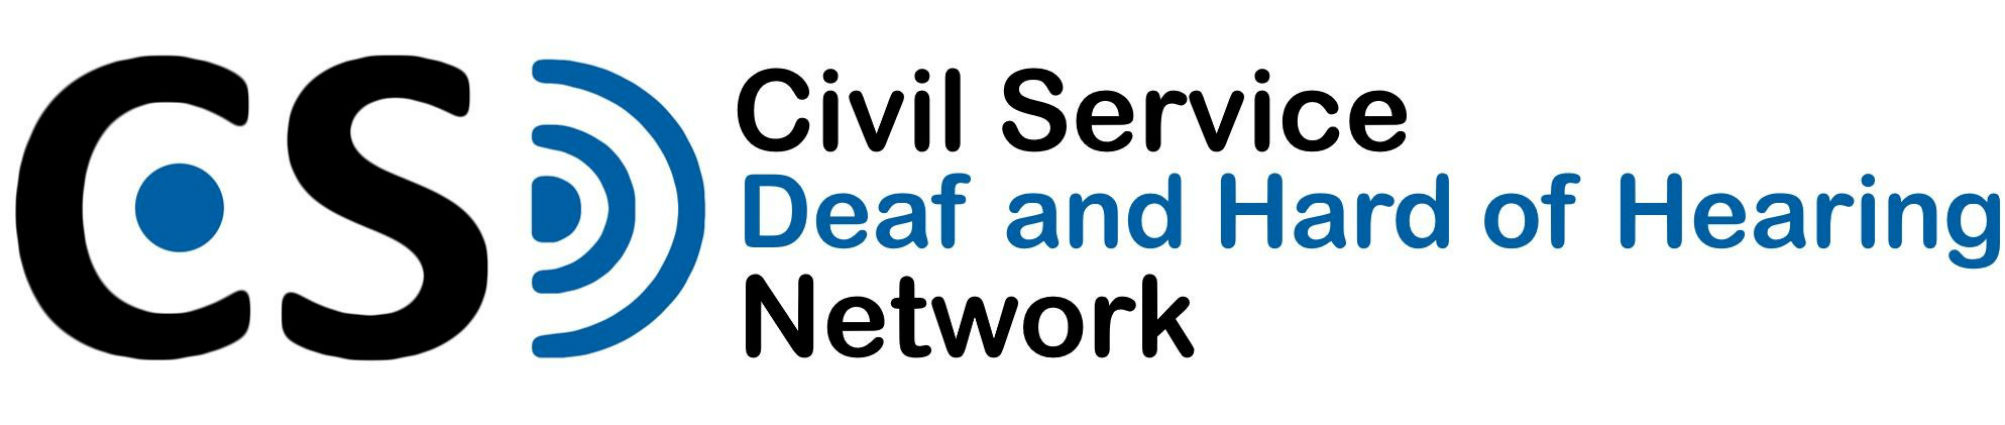 Banner of the Civil Service Deaf and Hard of Hearing Network